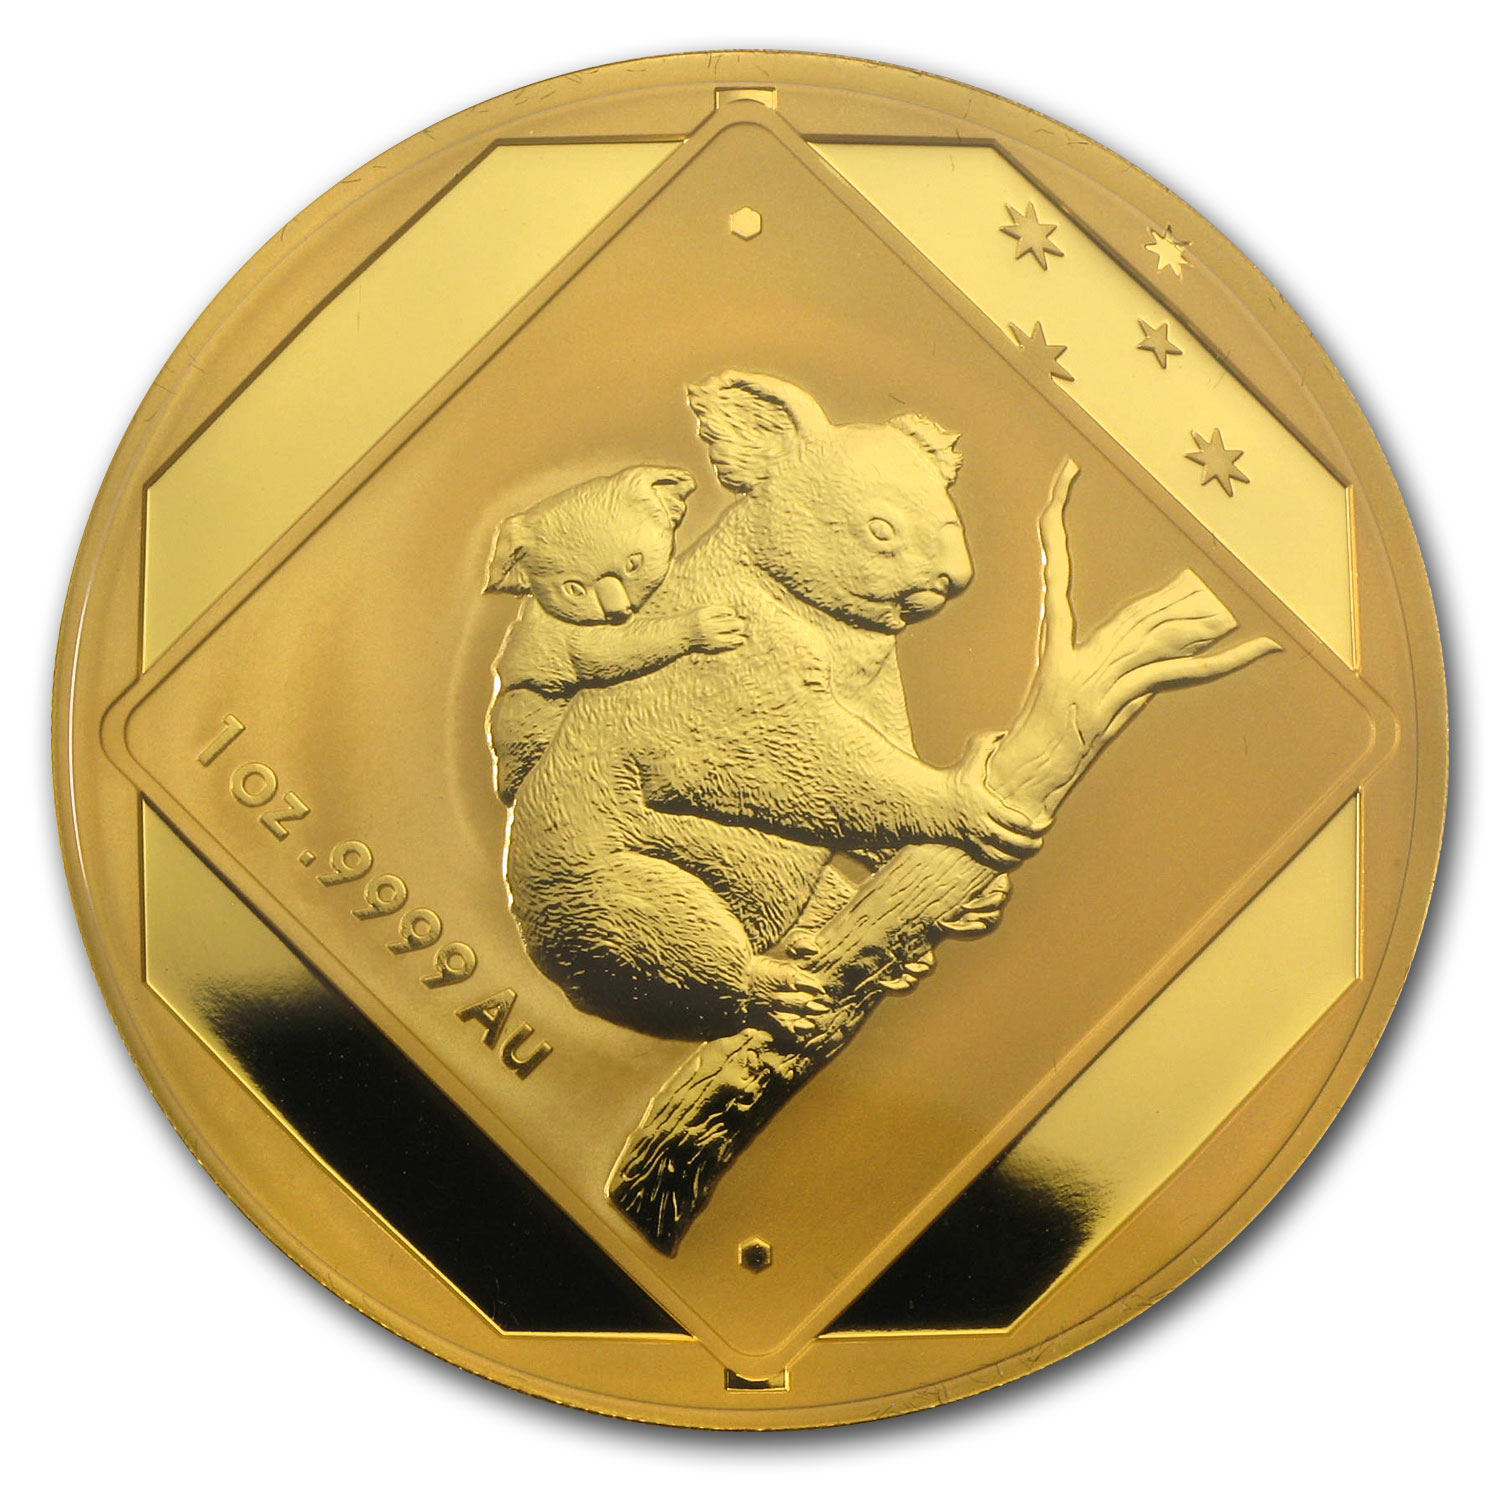 2014 1 oz Gold Royal Australian Mint $100 Koala Road Sign BU